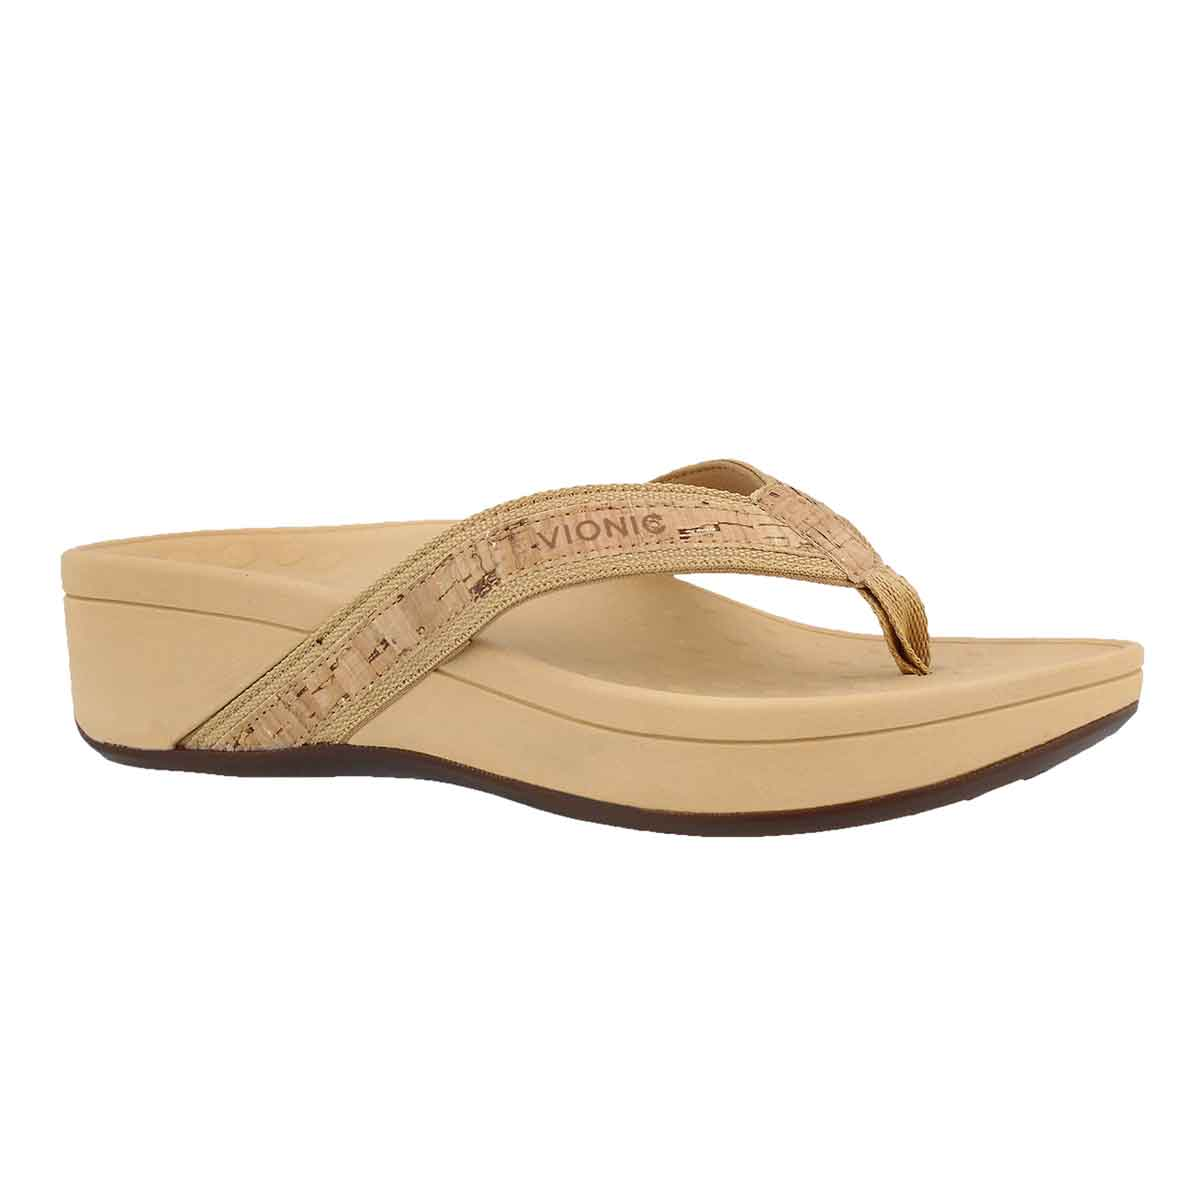 Women's HIGHTIDE gold arch support wedge sandals